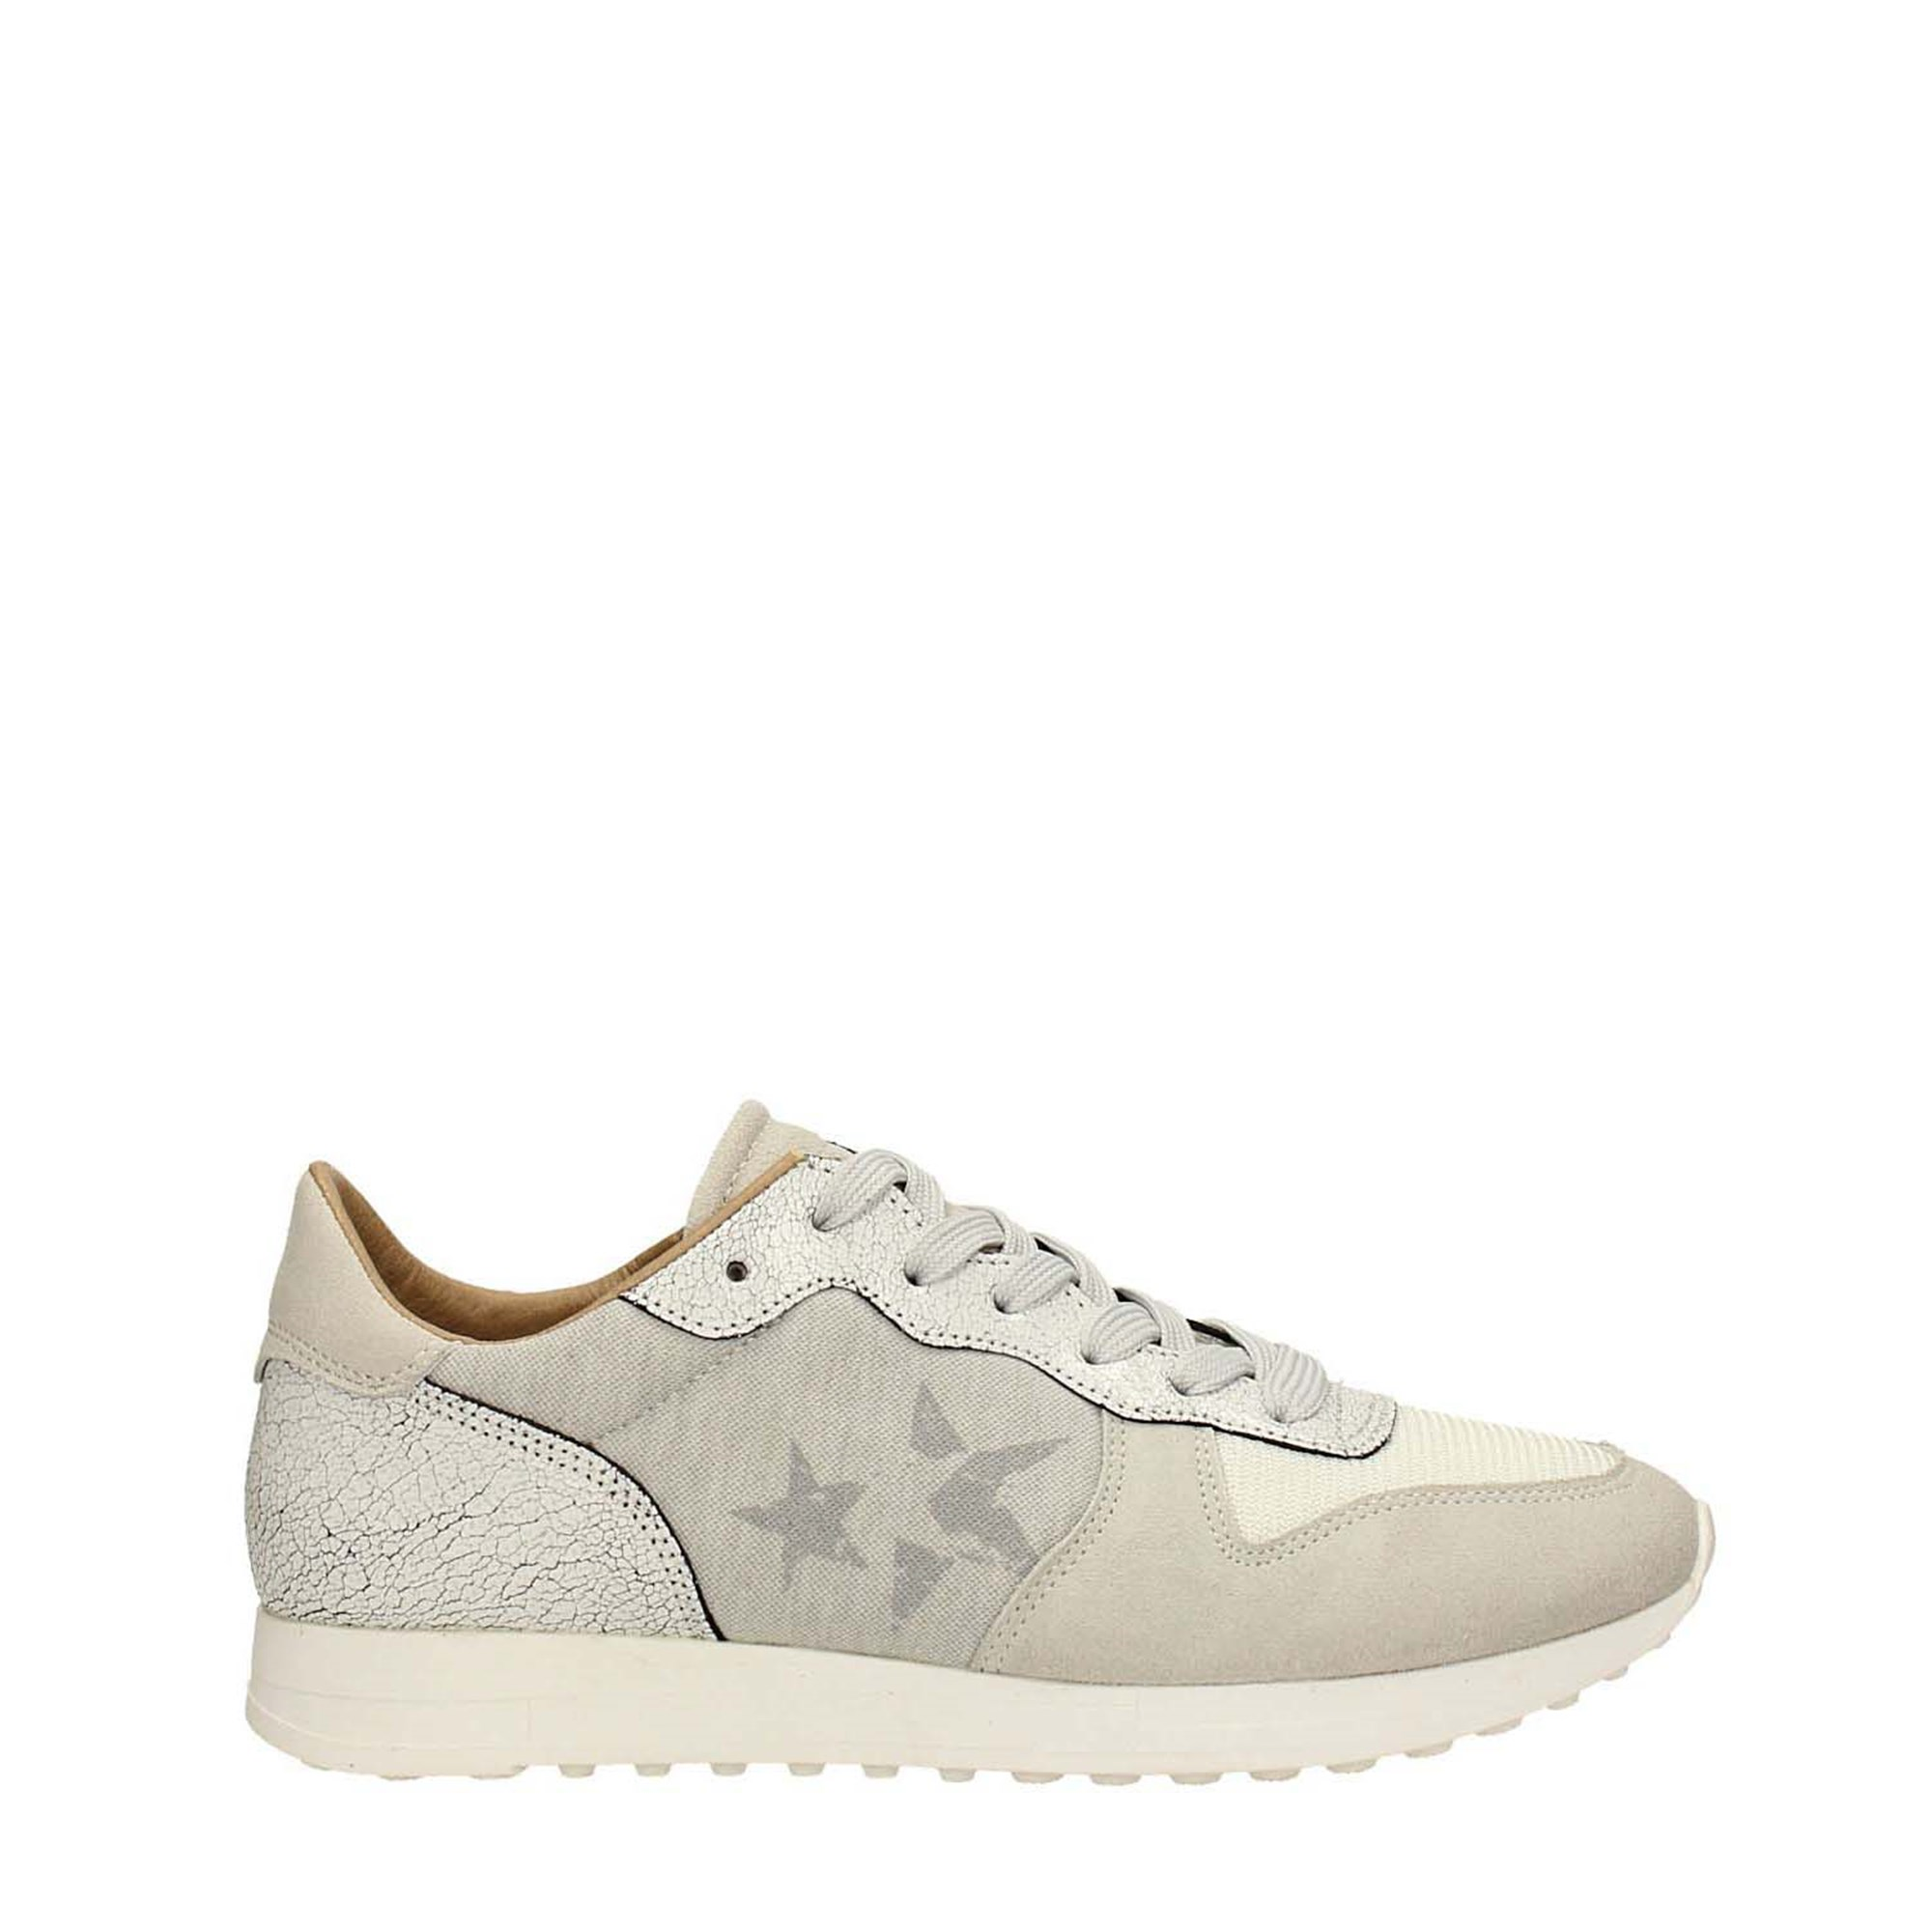 Tata Italia Shoes Man Sneakers KMS8699